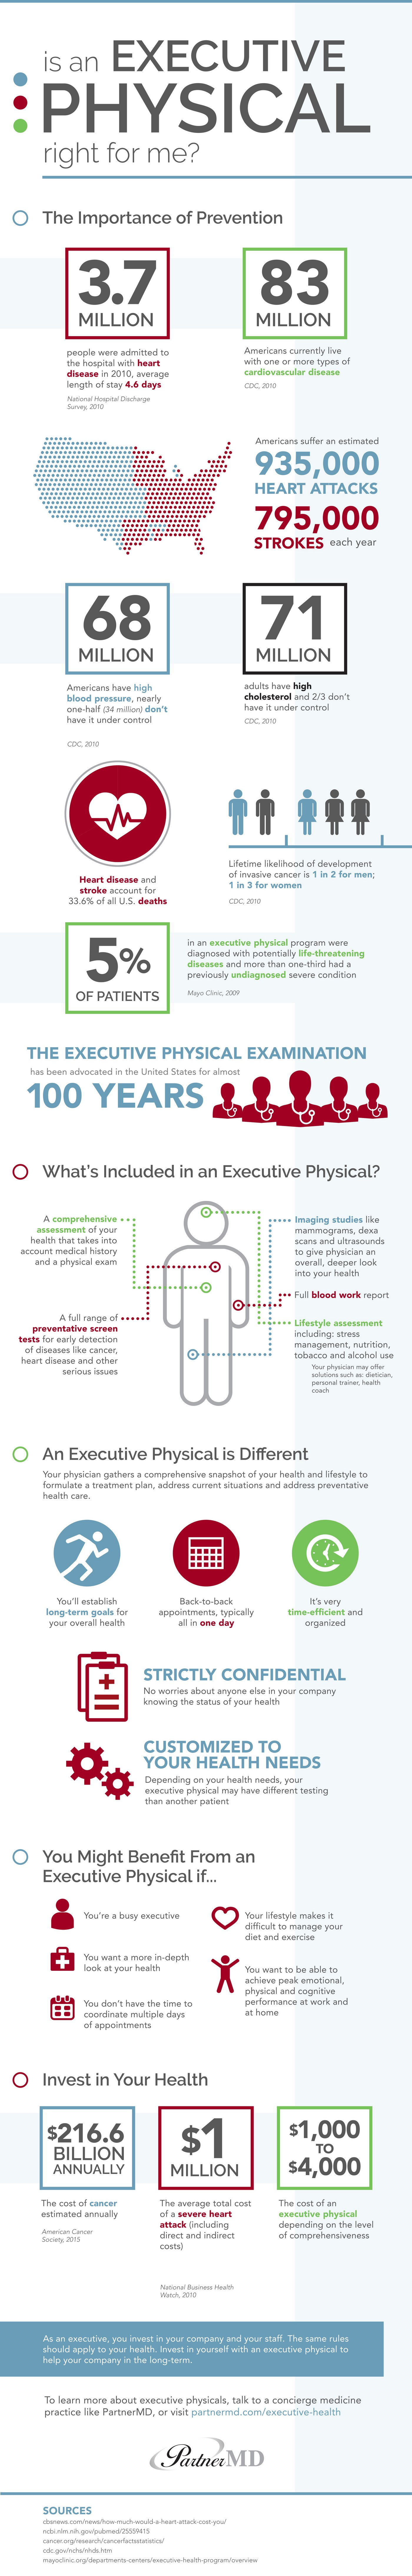 is-an-executive-physical-right-for-me-infographic.jpg